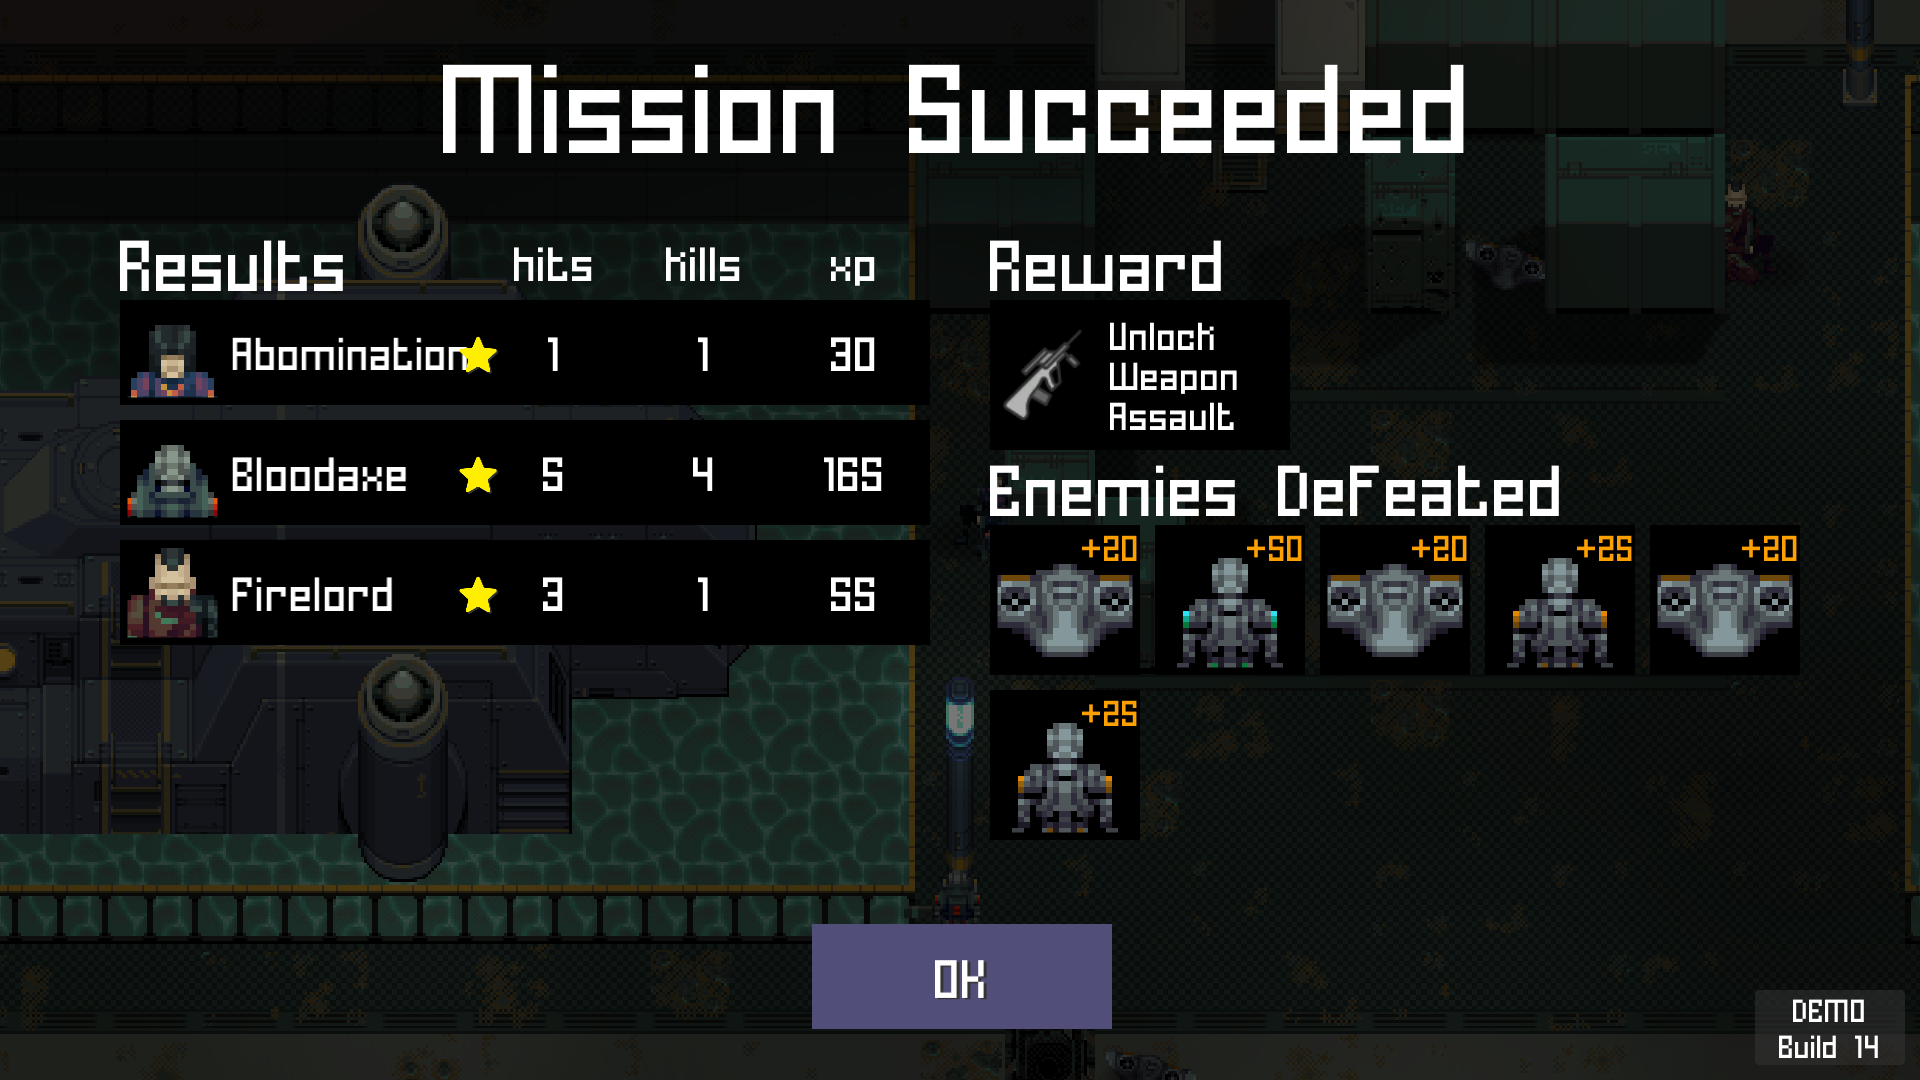 Another successful mission